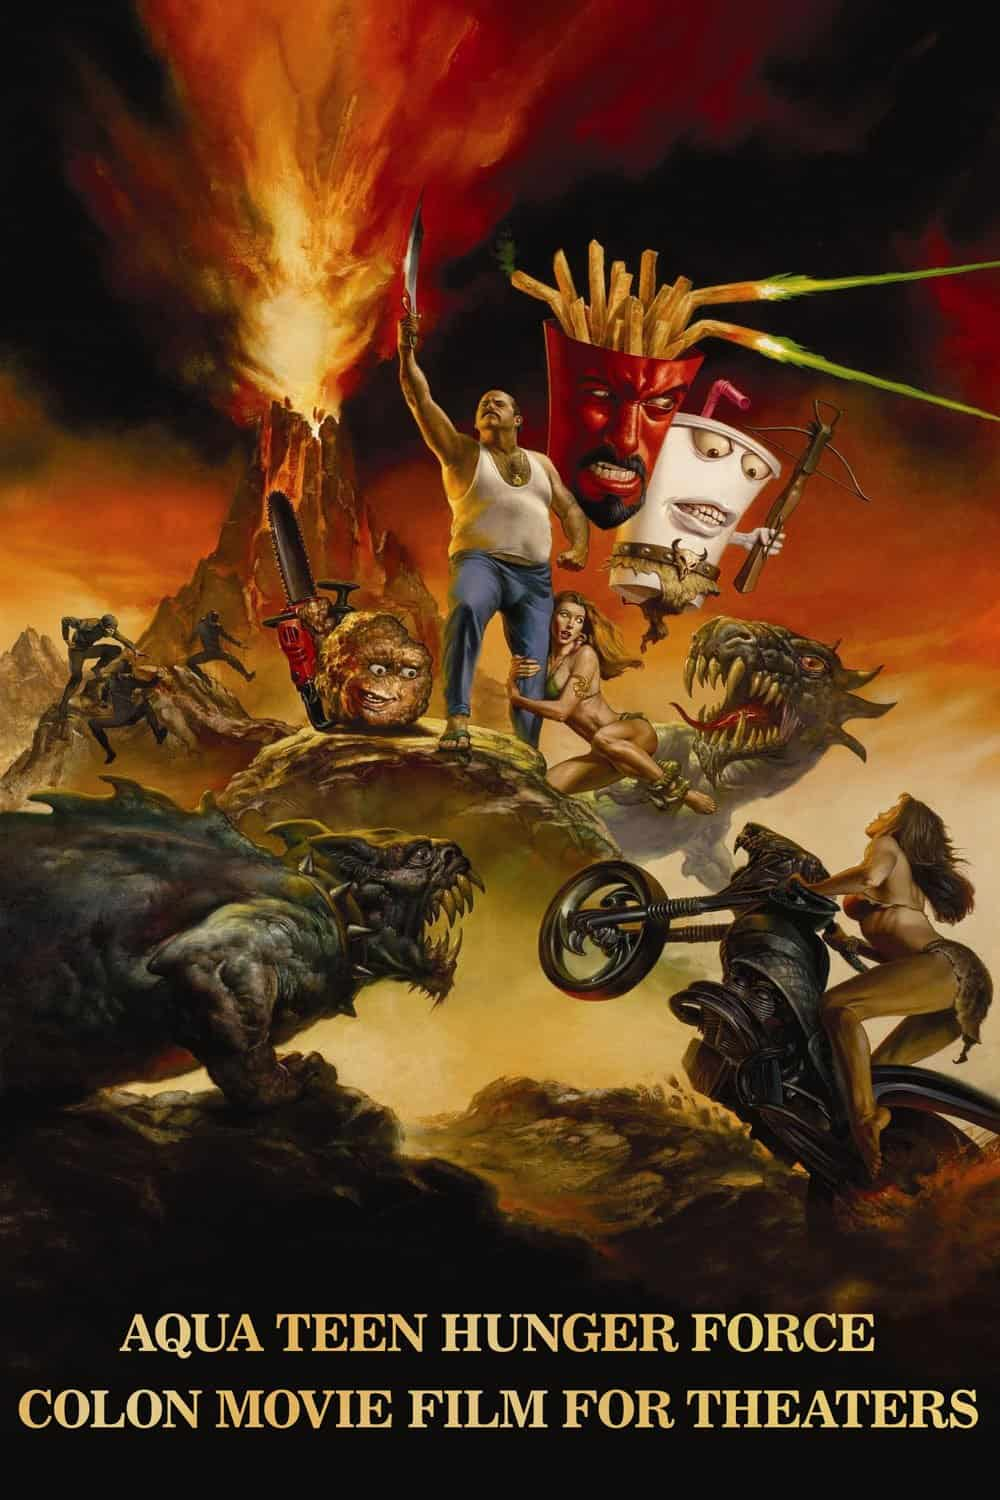 Aqua Teen Hunger Force Colon Movie Film for Theaters, 2007